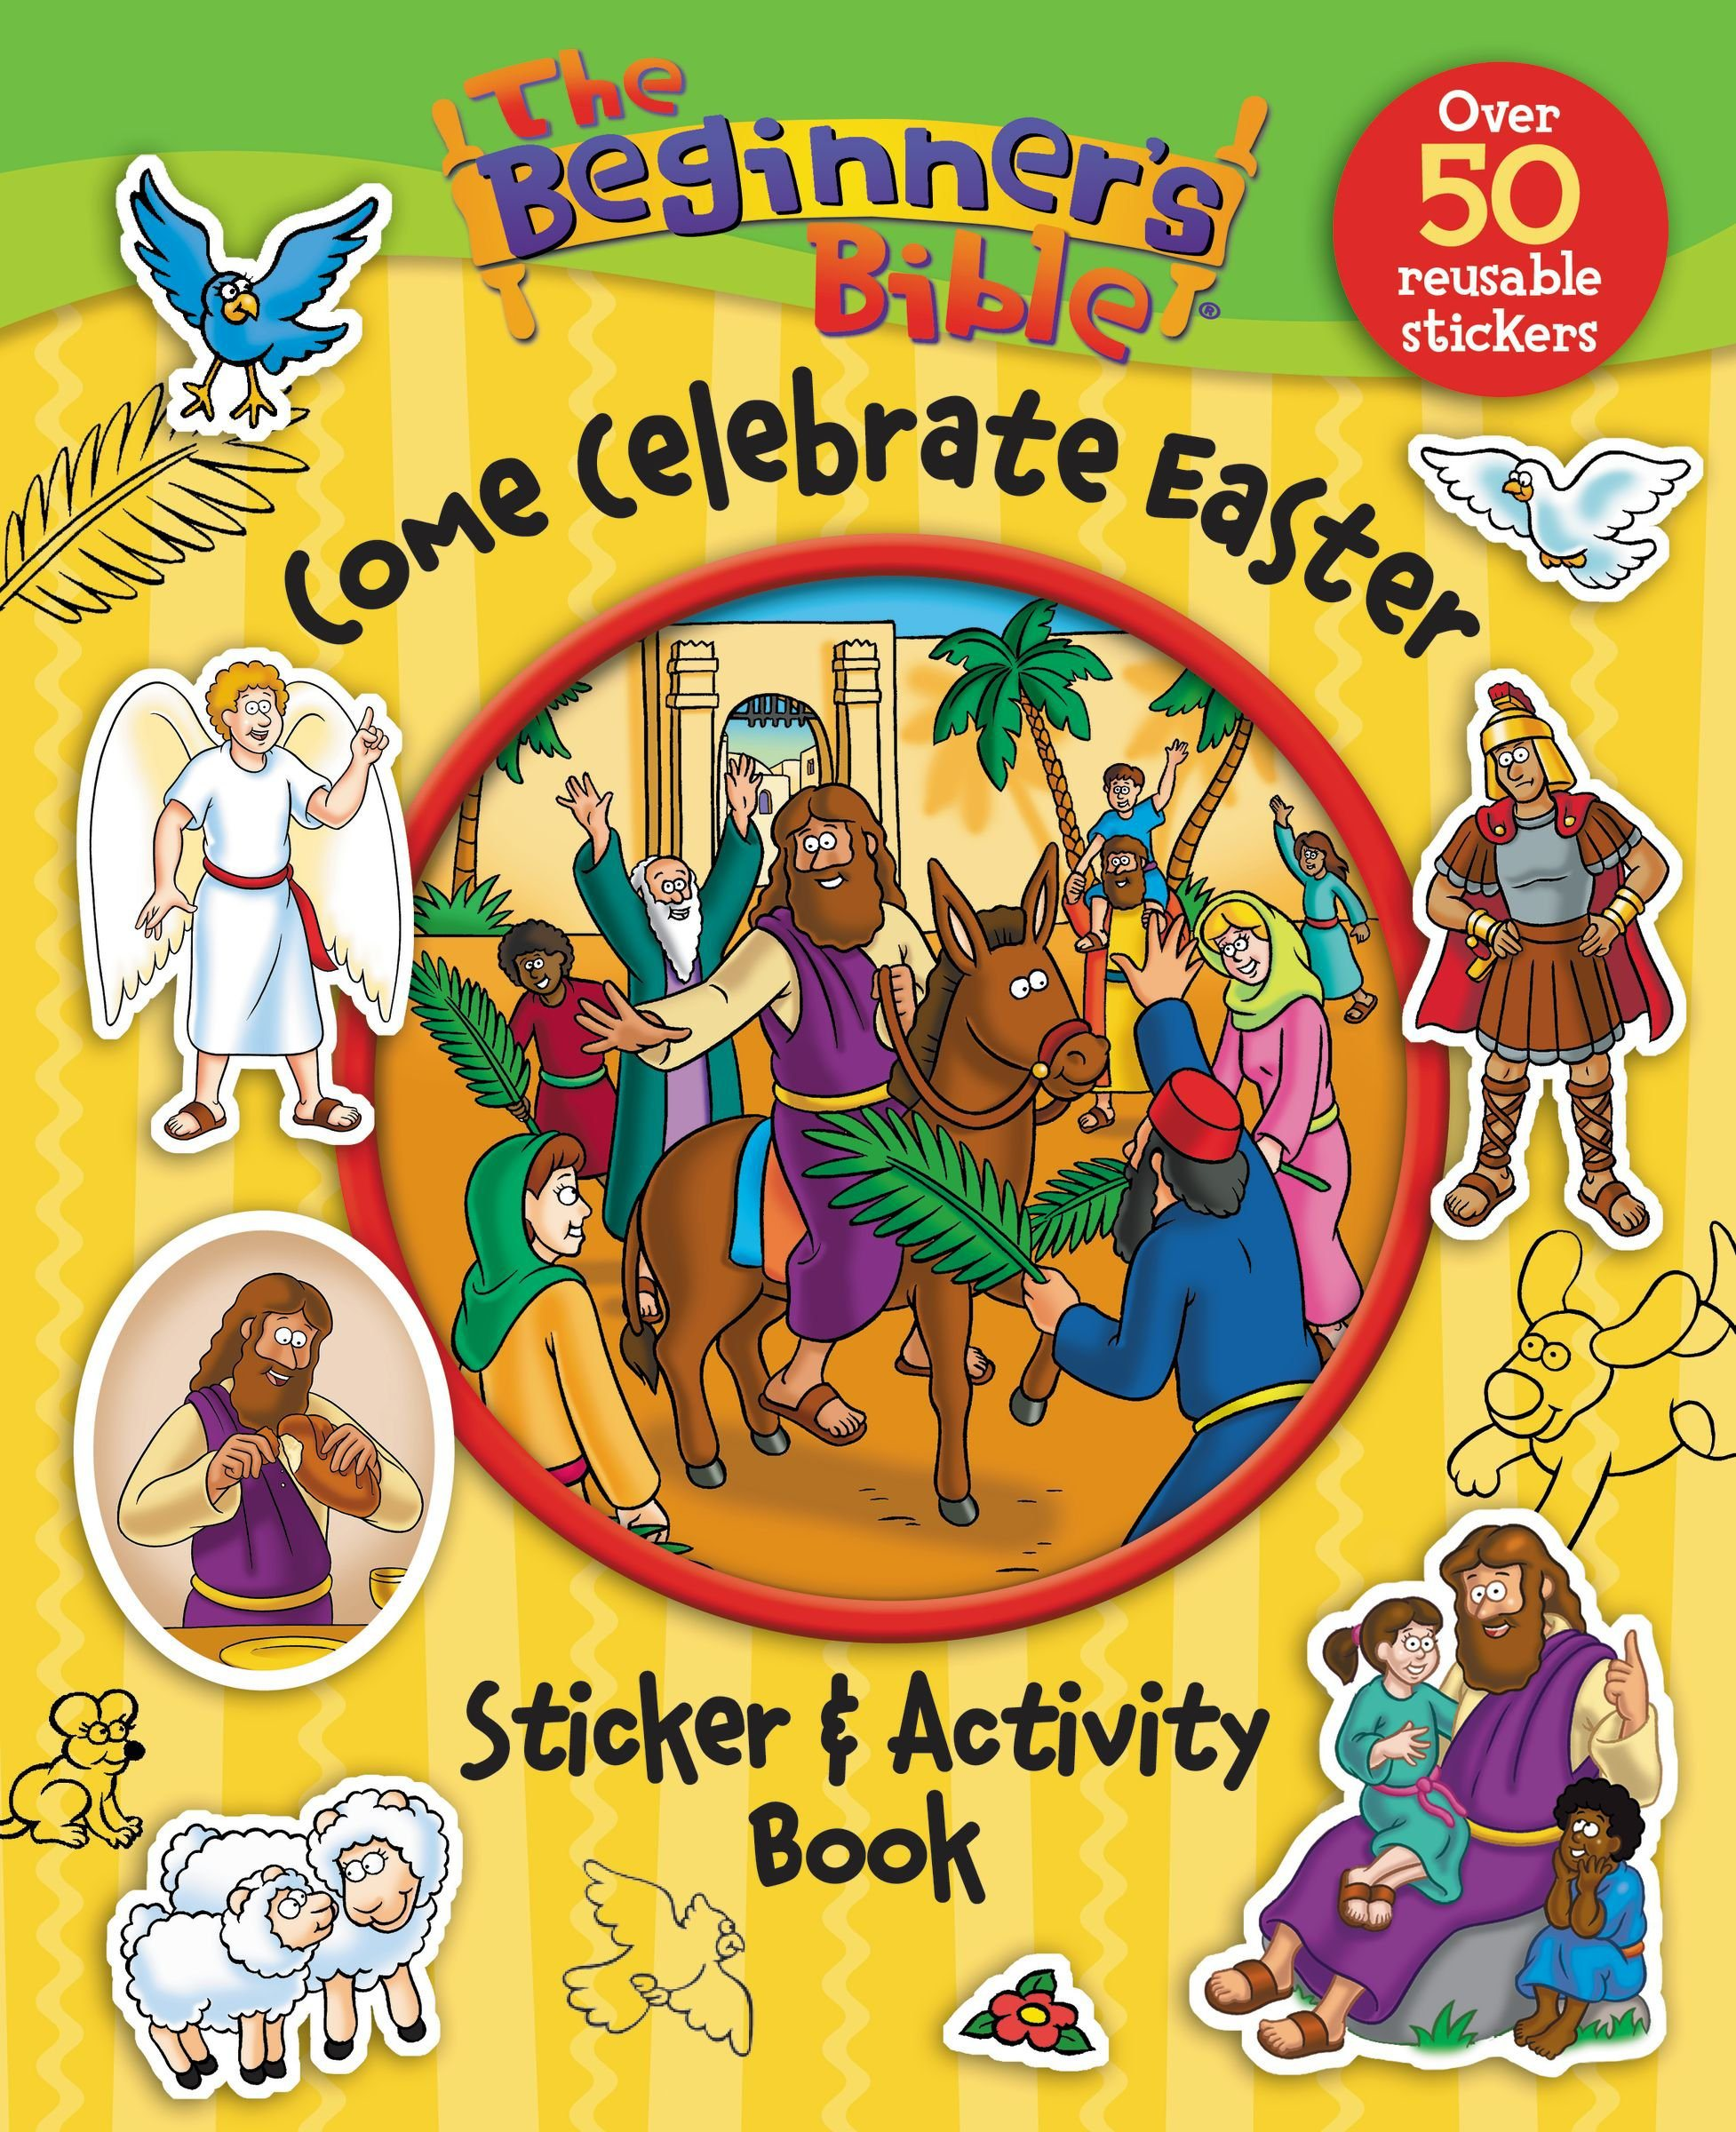 - The Beginner's Bible Come Celebrate Easter Sticker And Activity